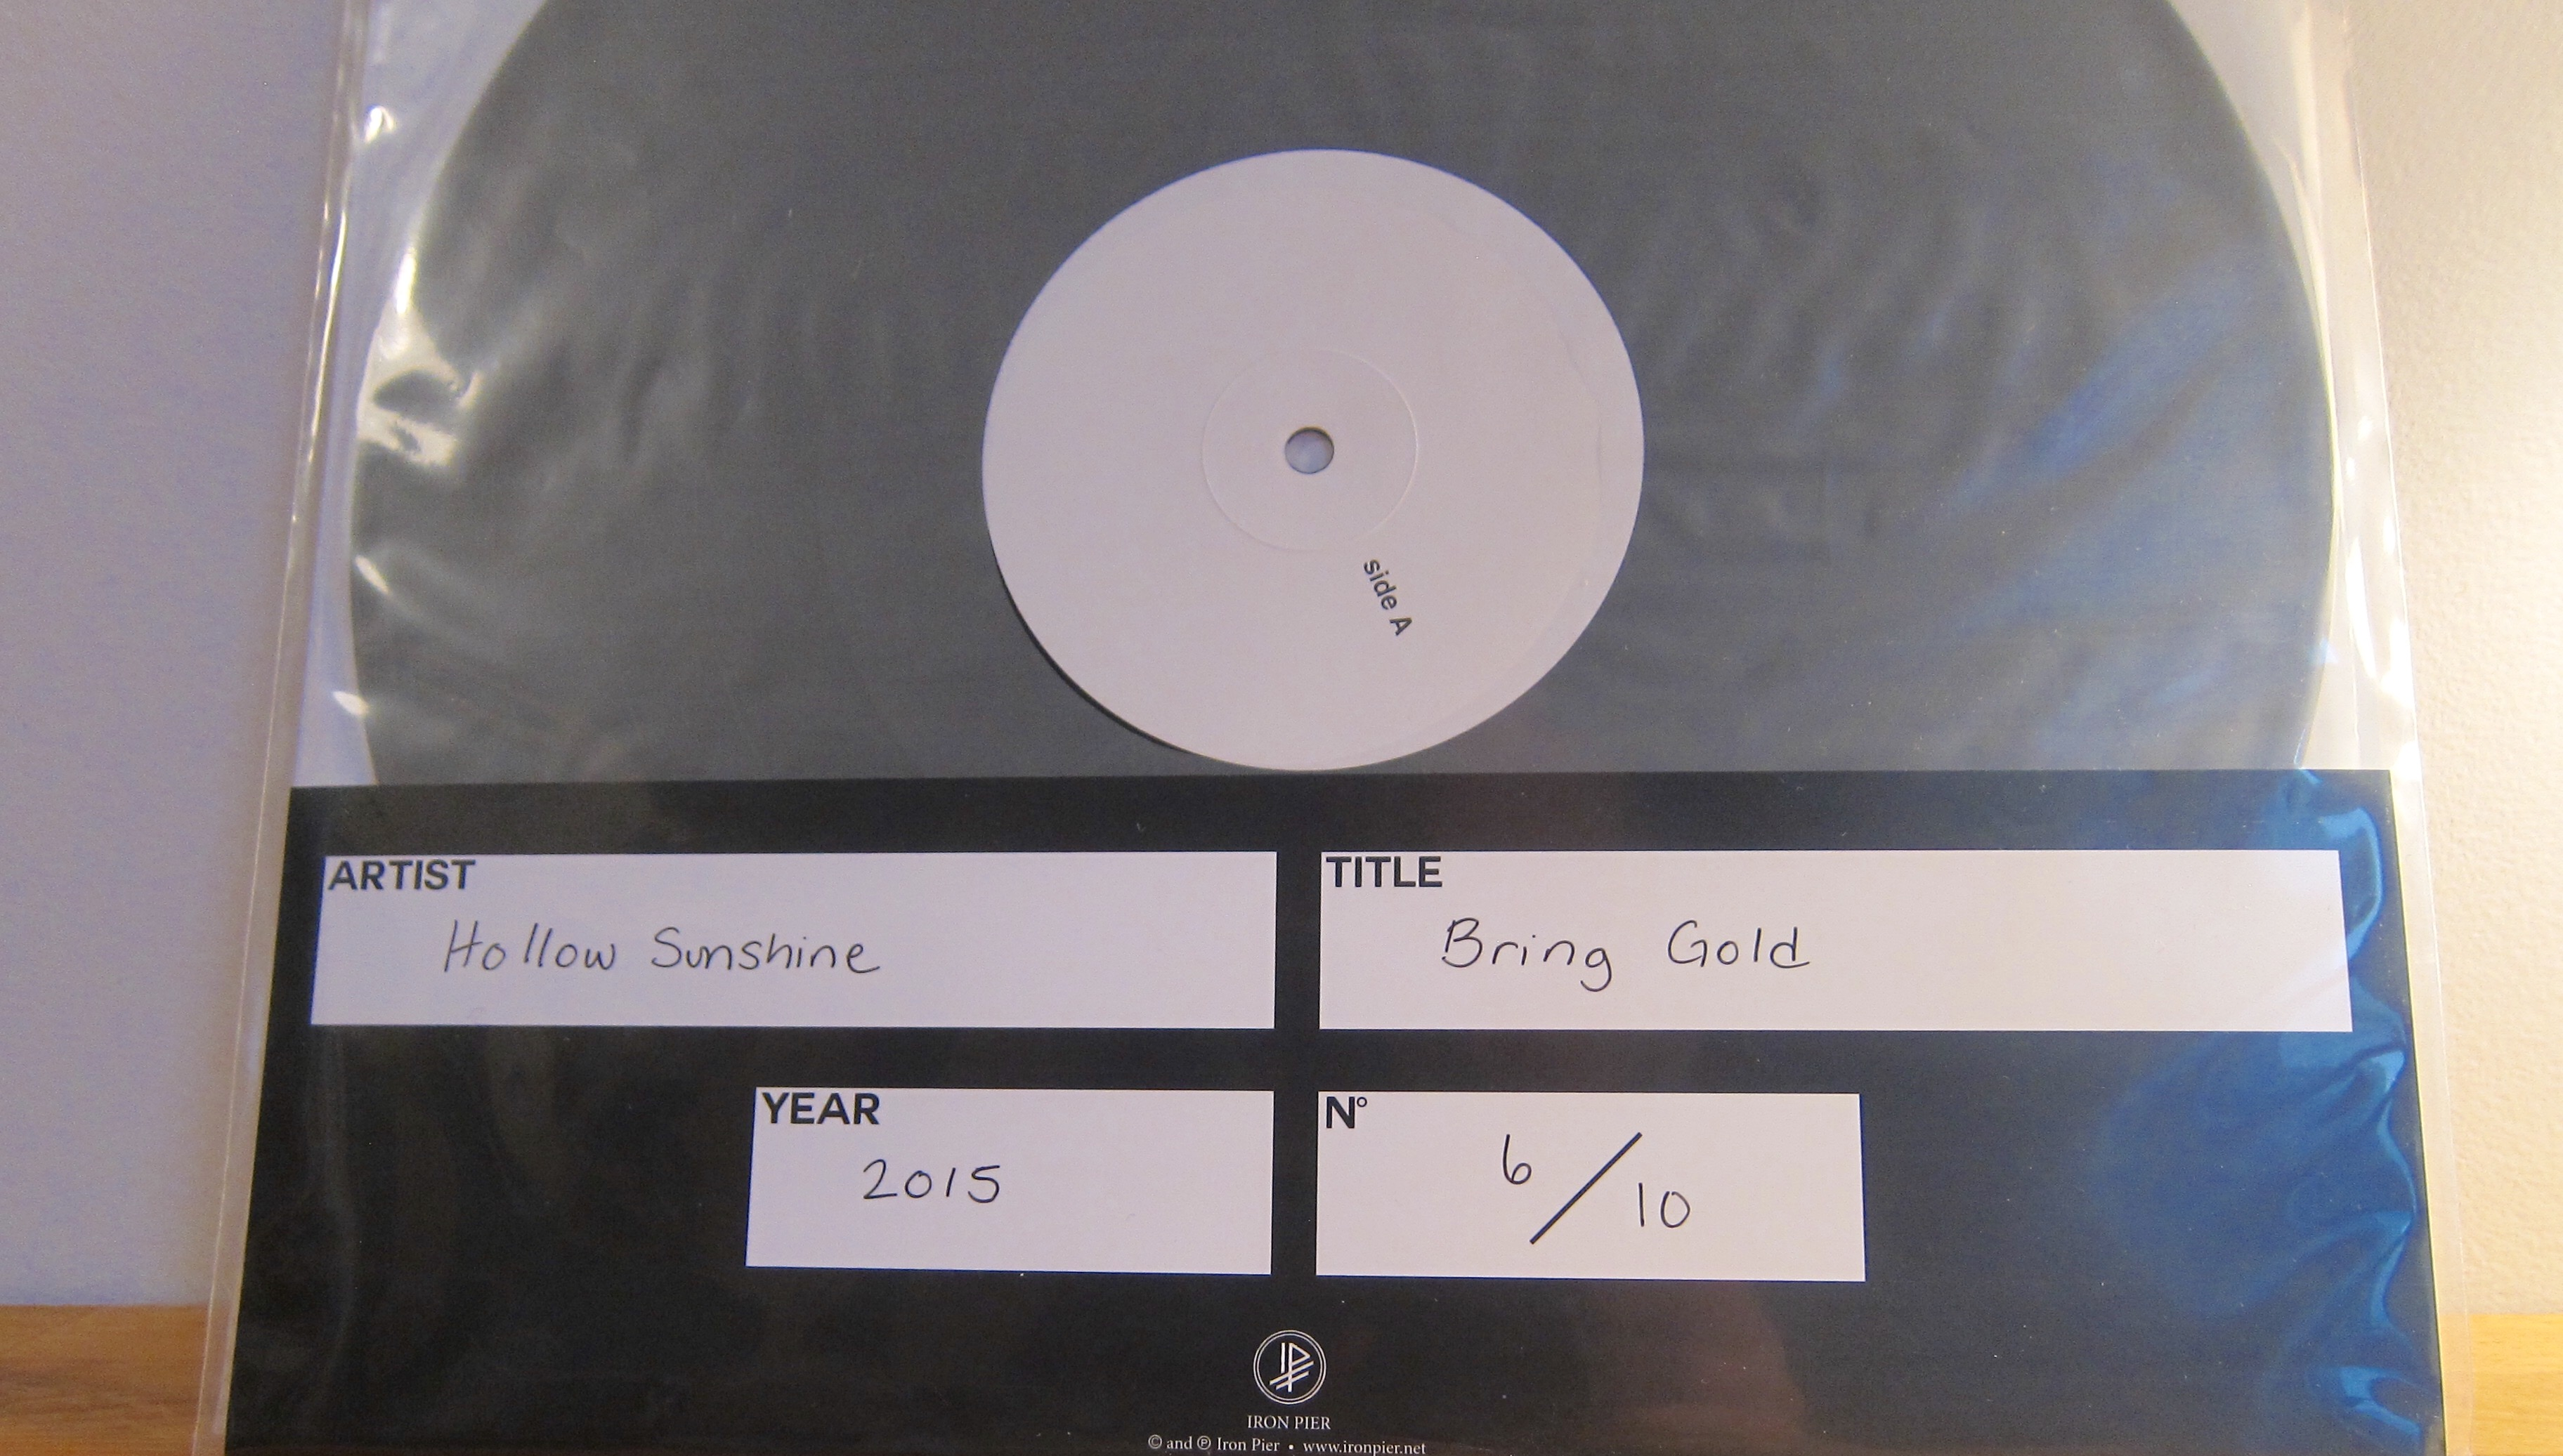 Test Pressings & Collectors Items